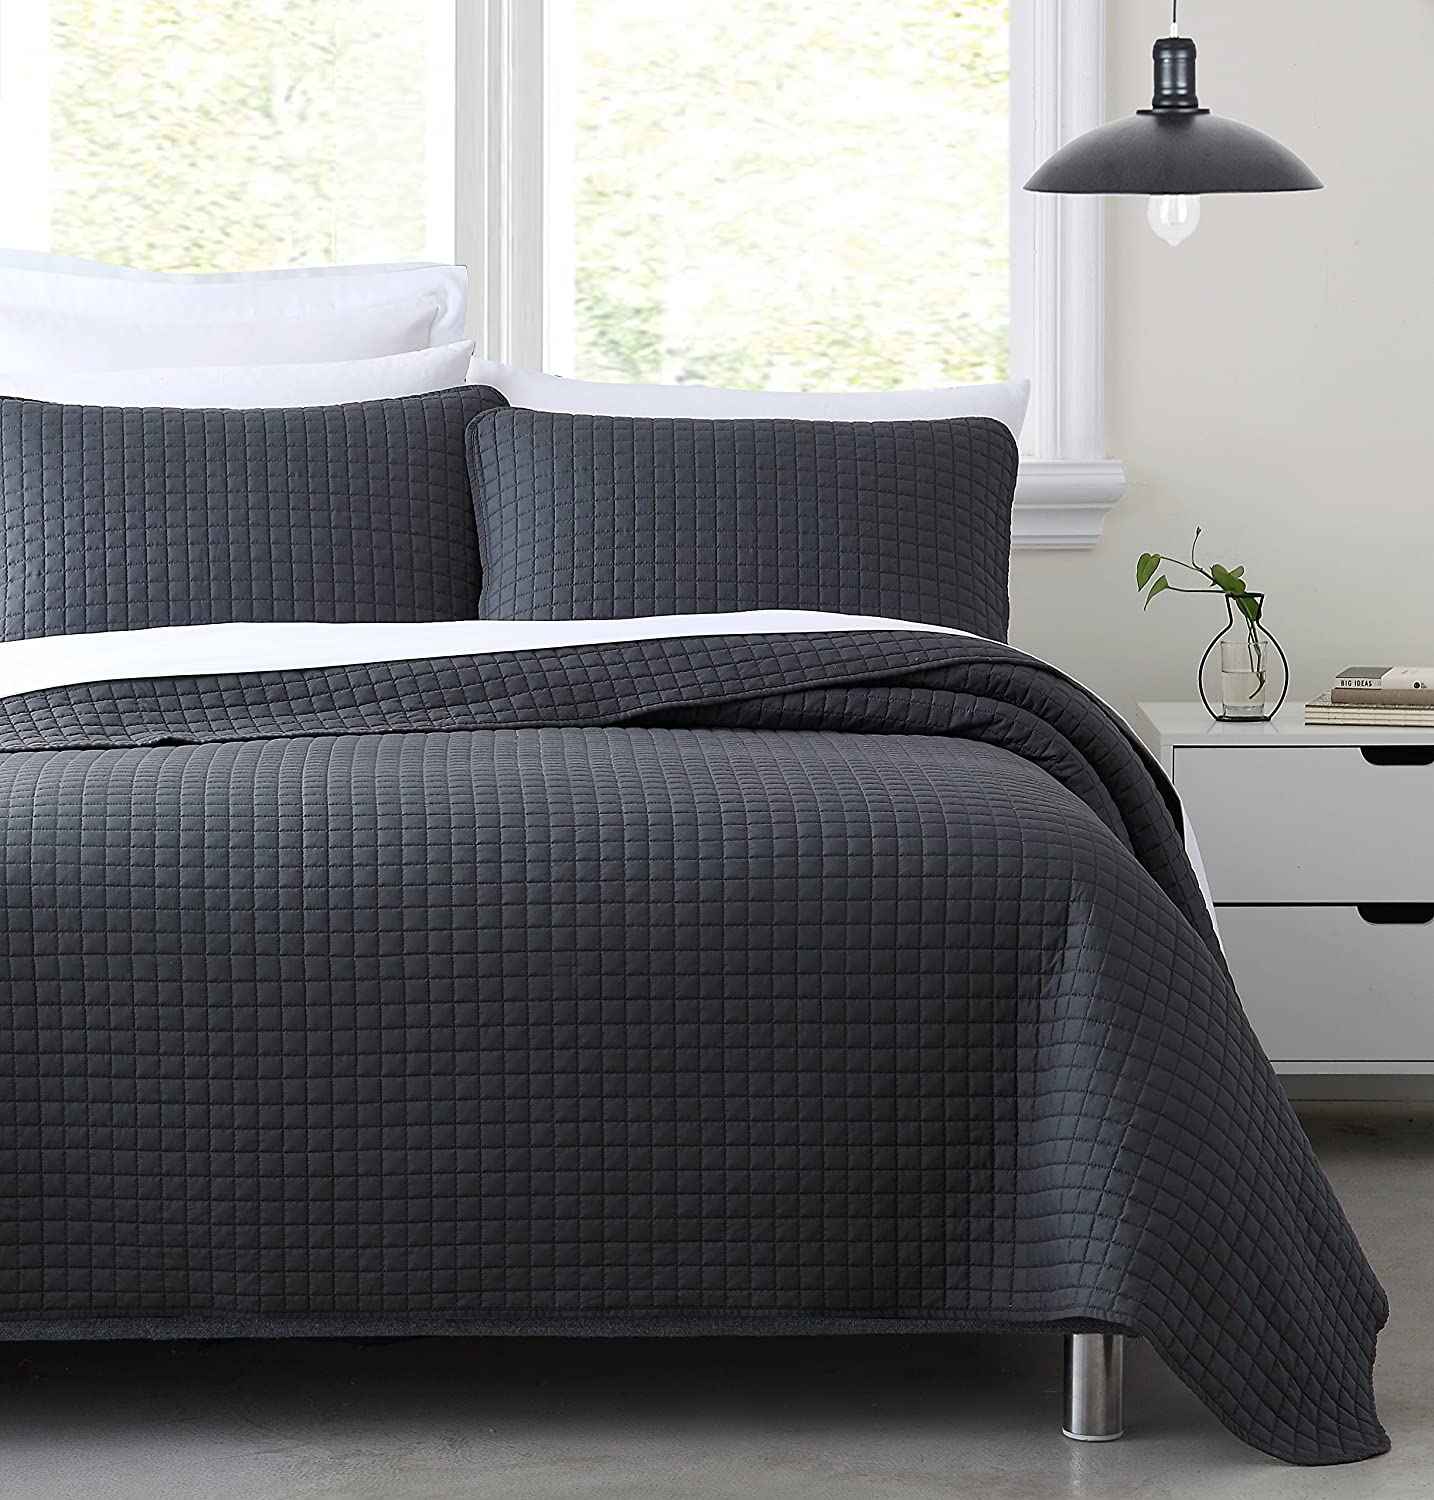 Cozy Beddings 1703-5K Quilt Sets King//Cal-King Charcoal Grey